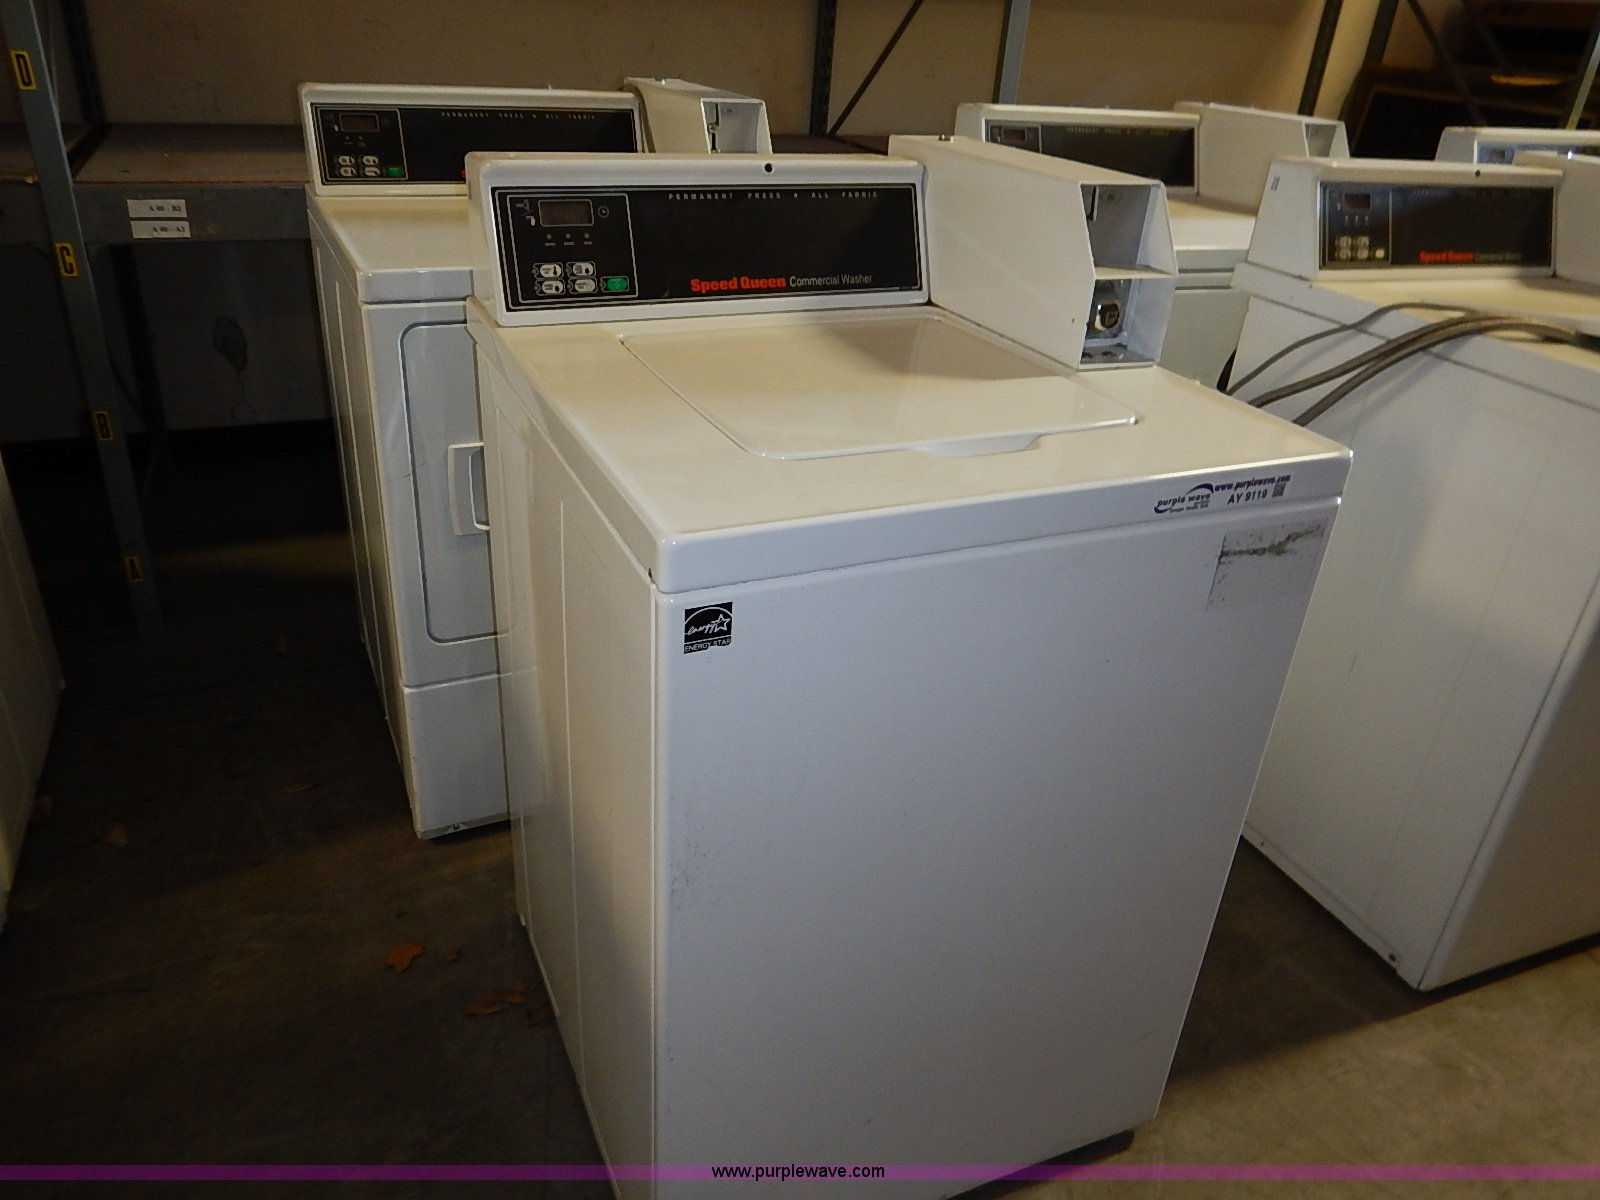 hight resolution of ay9119 image for item ay9119 speed queen coin operated washer and dryer set